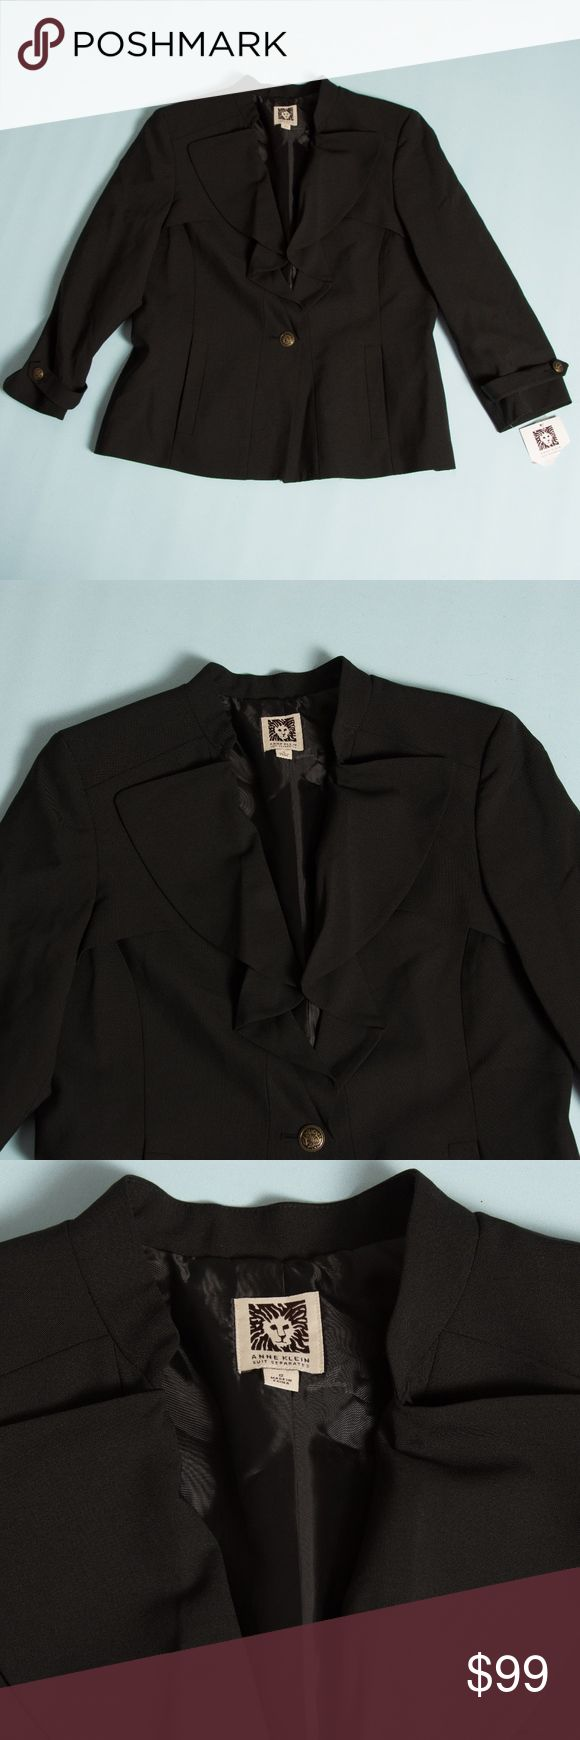 NWT Anne Klein suit separates black  jacket, sz 12 NWT Anne Klein suit separates black  jacket, sz 12. Buttons have a cool design on front and sleeves. Pockets in the front. Original price still on tag is $129. Has 2 buttons attached still with tag for any future repairs. Beautiful jacket from non-smoking home. Anne Klein Jackets & Coats Blazers